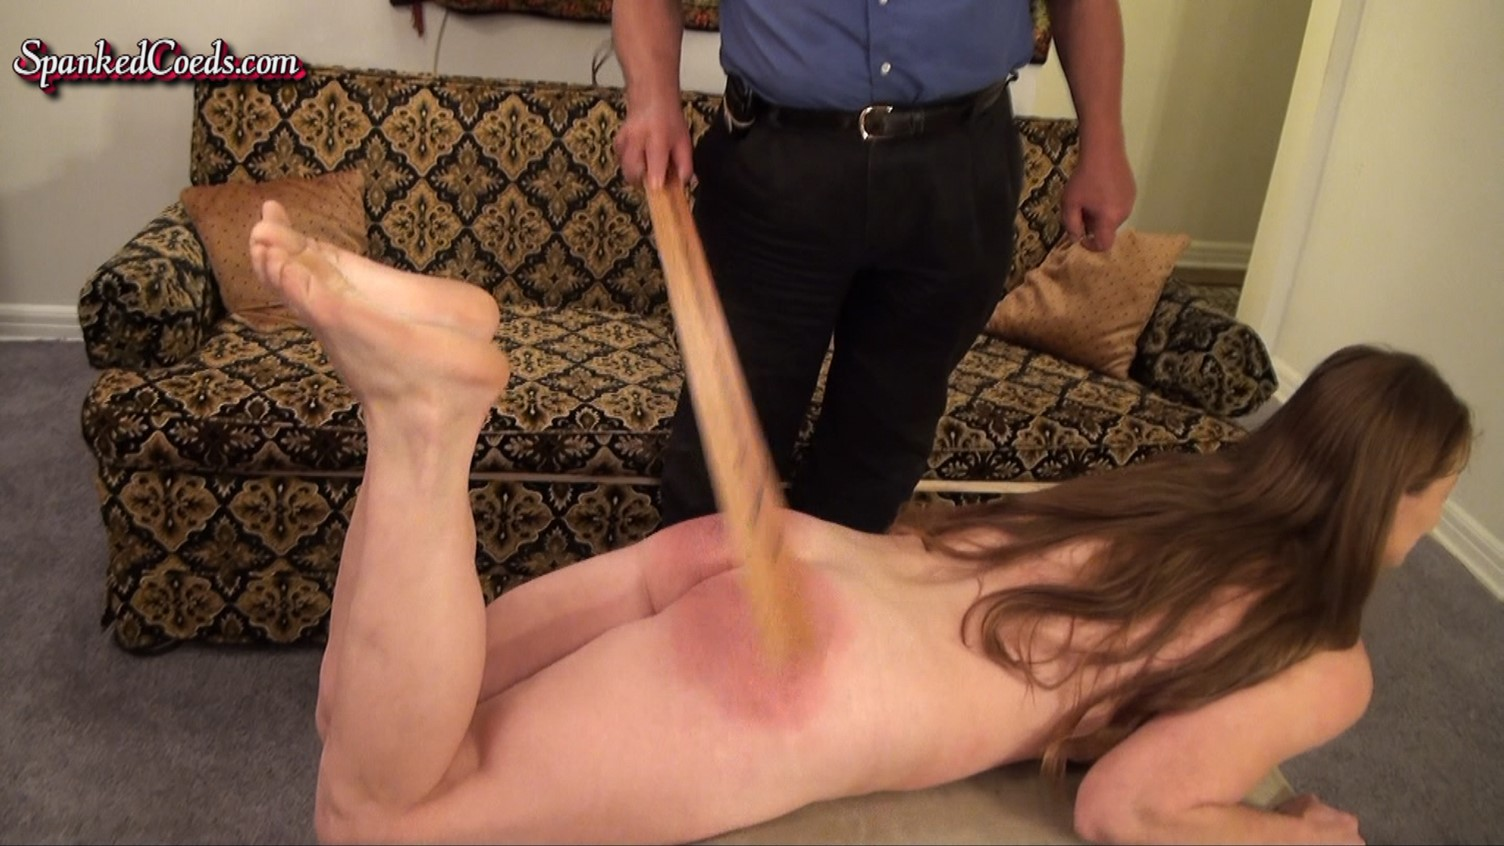 Caned for disobedience 2 elite club 6 - 1 part 4